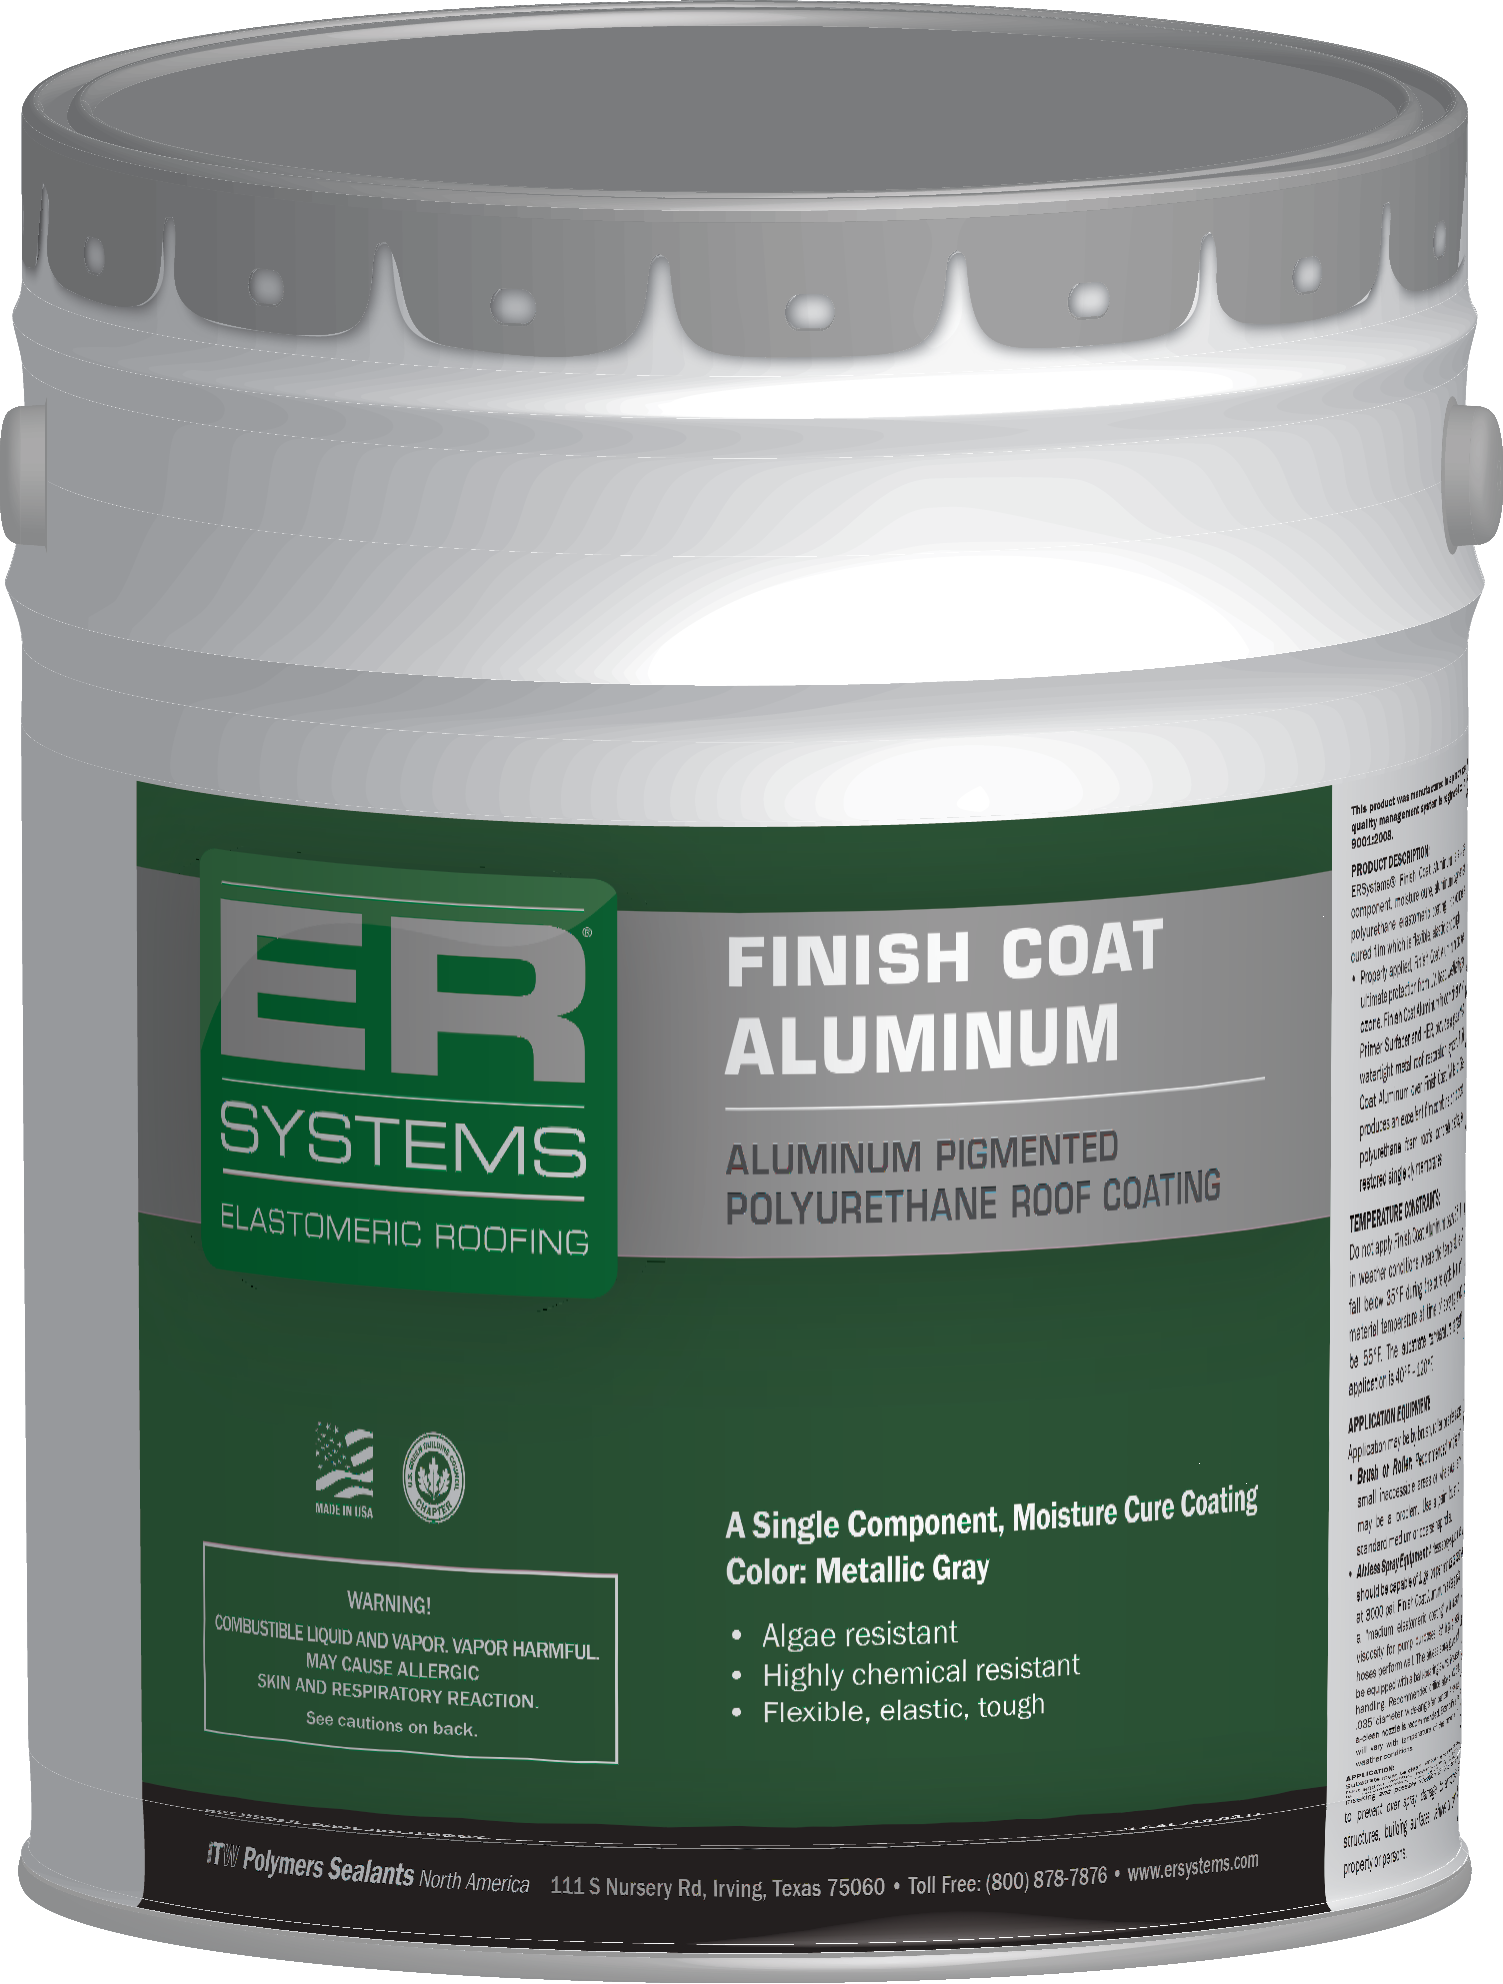 ER Finish Coat Aluminum 5g Pail 2016-04-29 [MOCKUP]